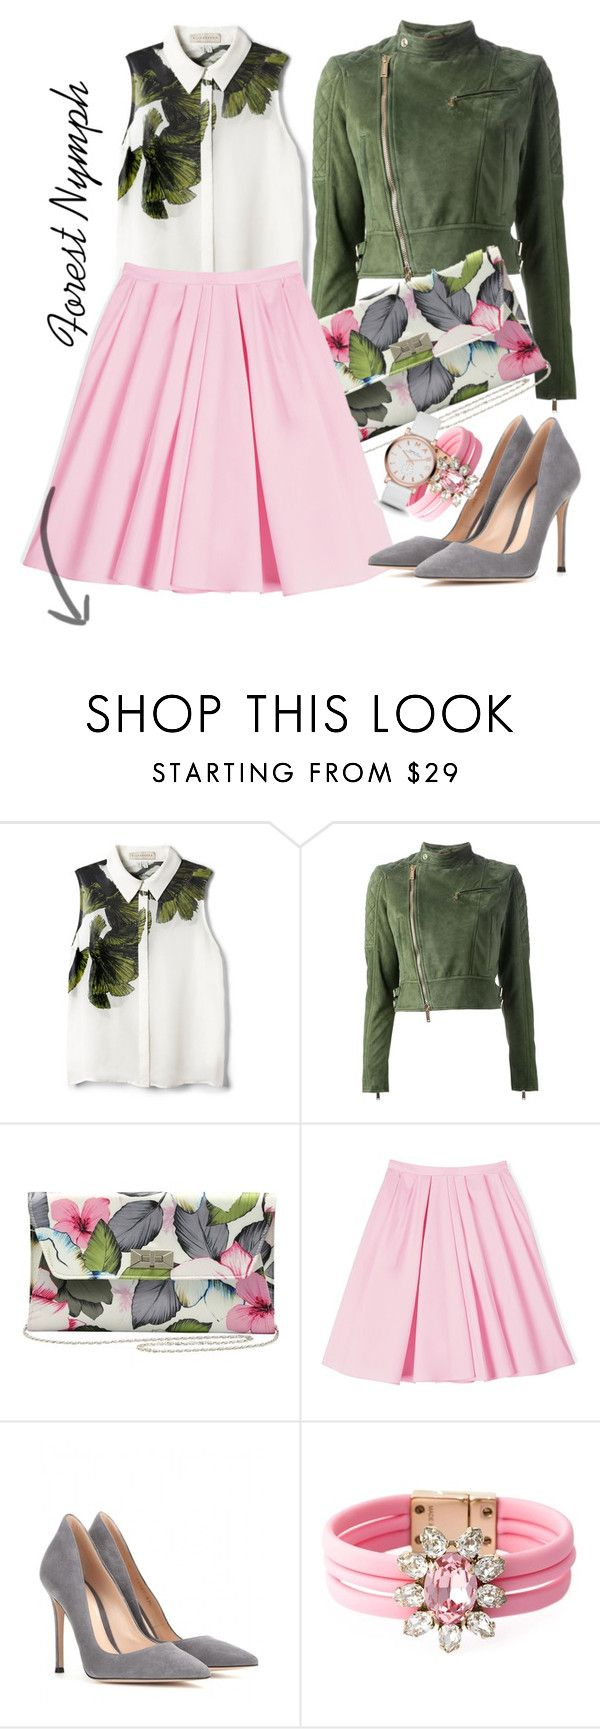 """""""Без названия #761"""" by funnygirl-1 ❤ liked on Polyvore featuring Elle Sasson, Dsquared2, M&Co, Carven, Gianvito Rossi, Shourouk and Marc by Marc Jacobs"""